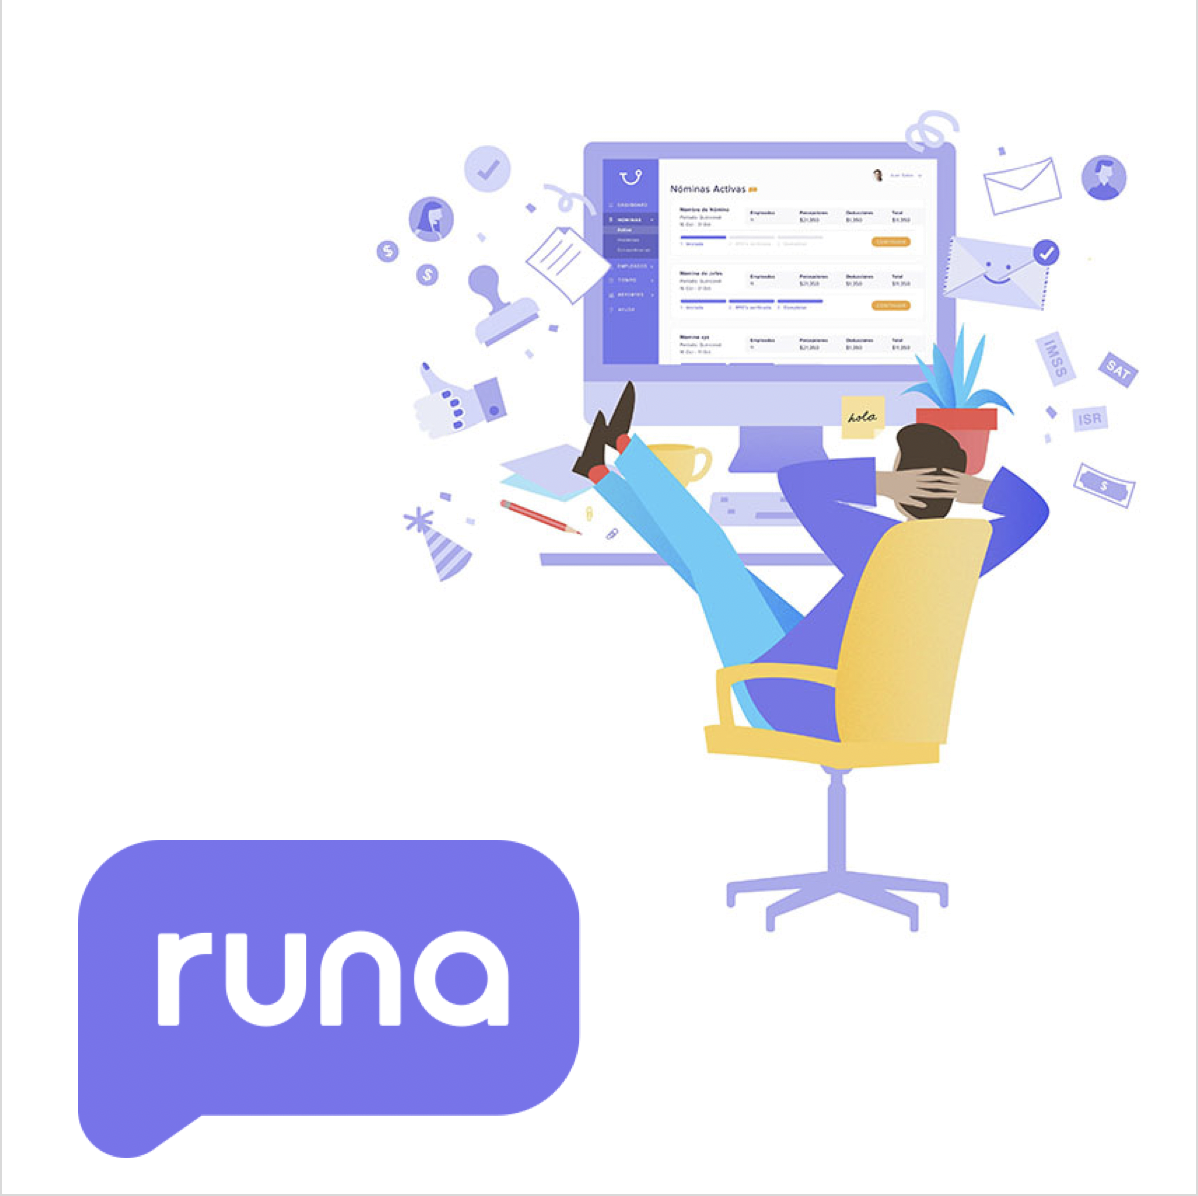 Runa   An HR software-as-a-service platform for Latam companies  Co-invested with Ribbit Capital